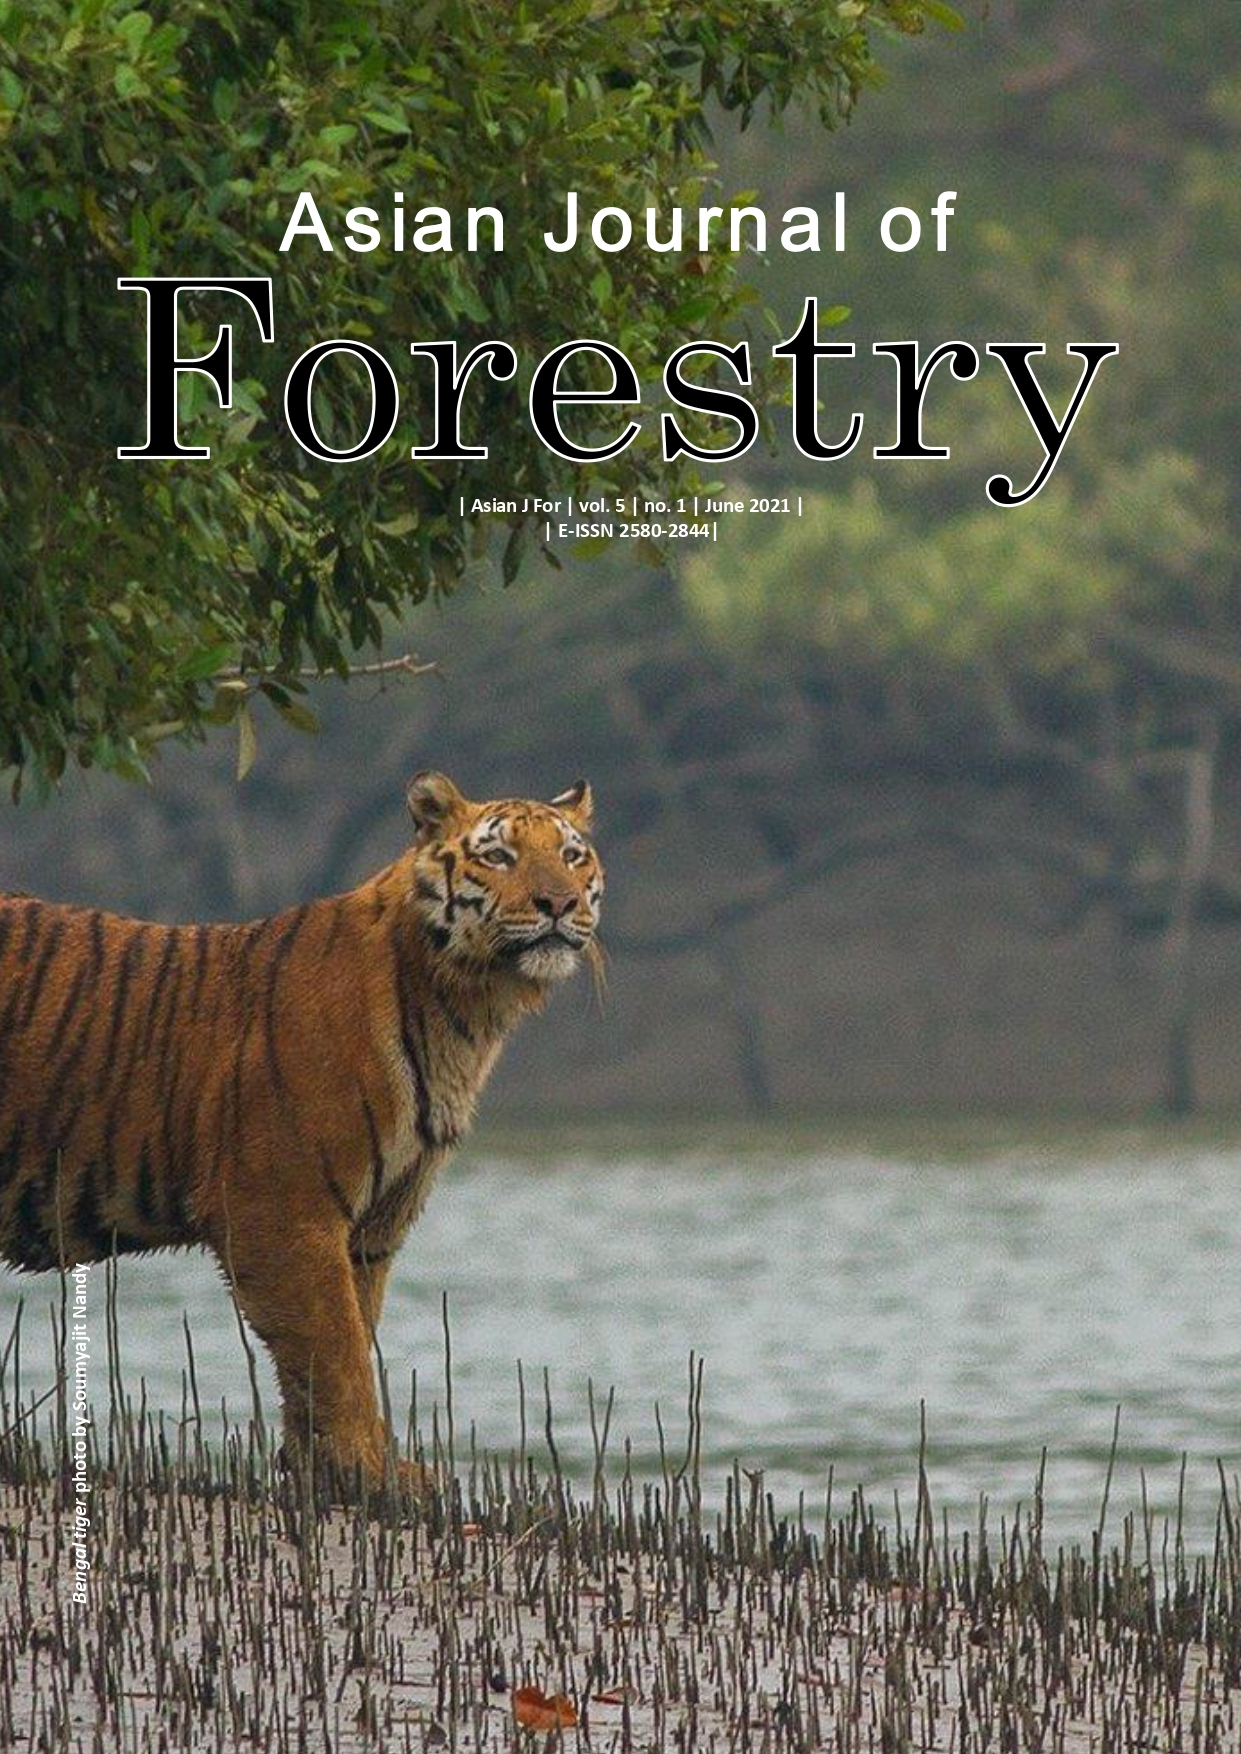 Asian Journal of Forestry